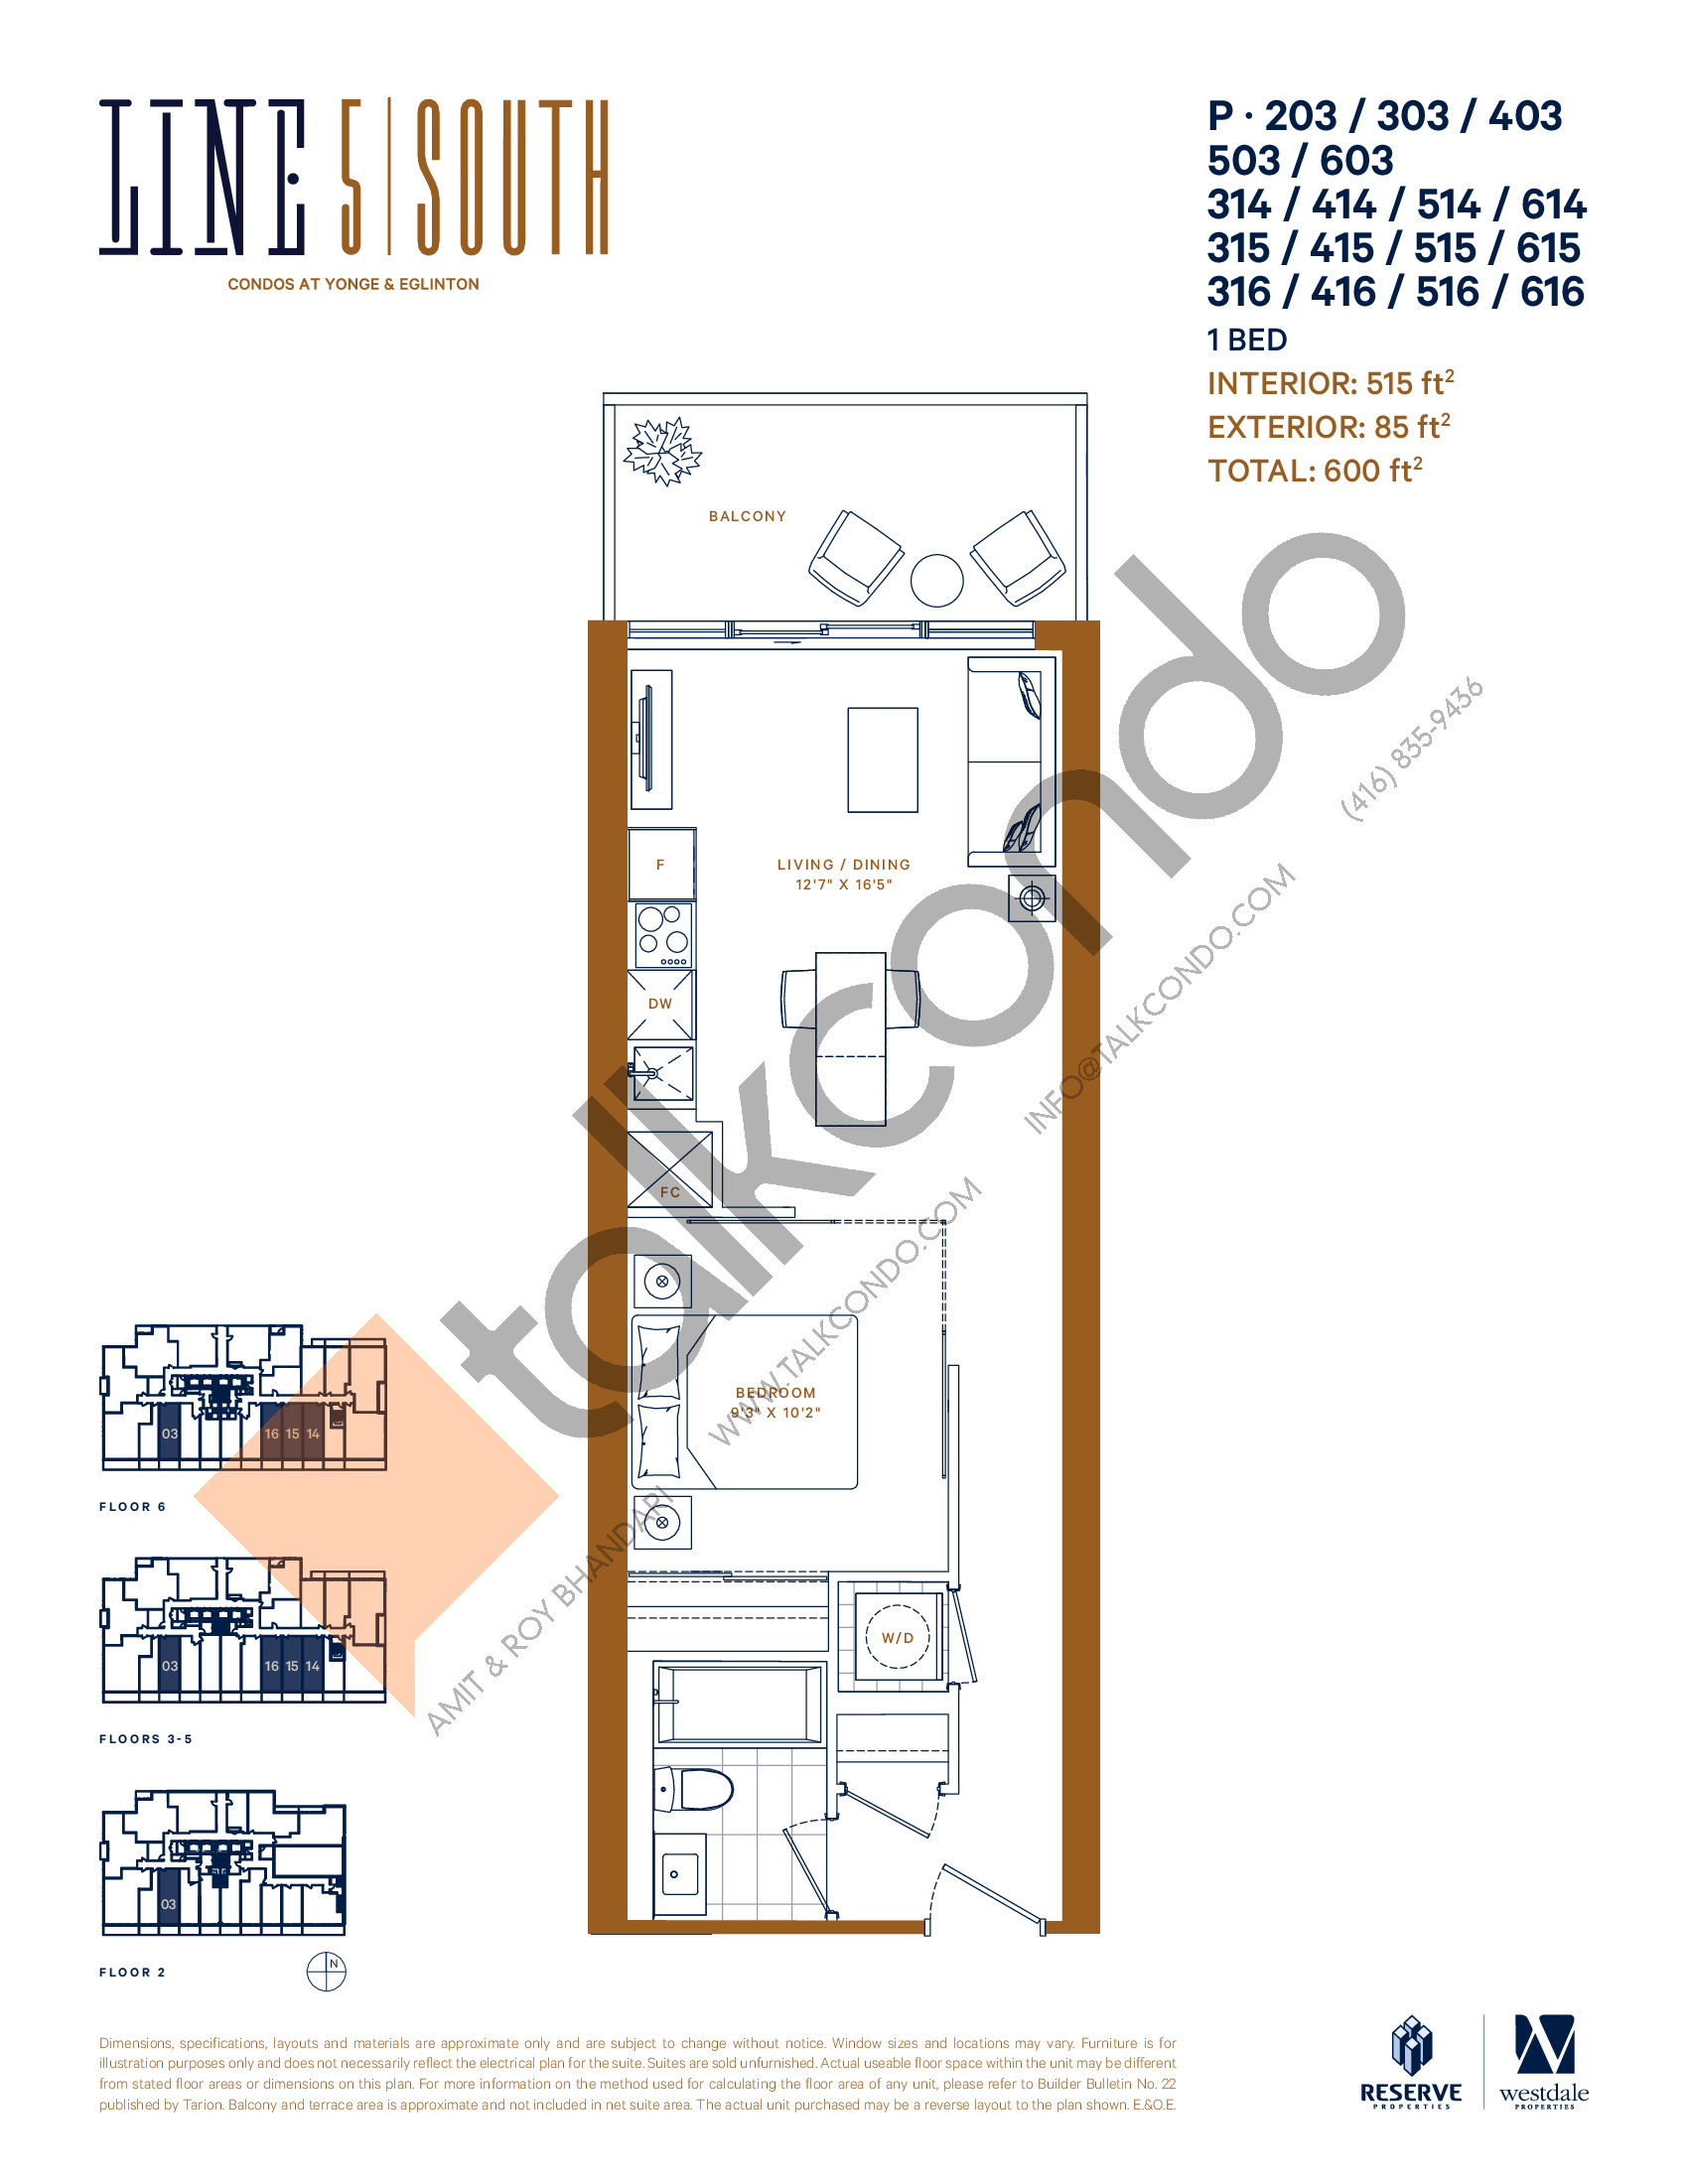 P-203/303/403/503/603/314/414/514/614/315/415/515/615/316/416/516/616 Floor Plan at Line 5 South Tower Condos - 515 sq.ft